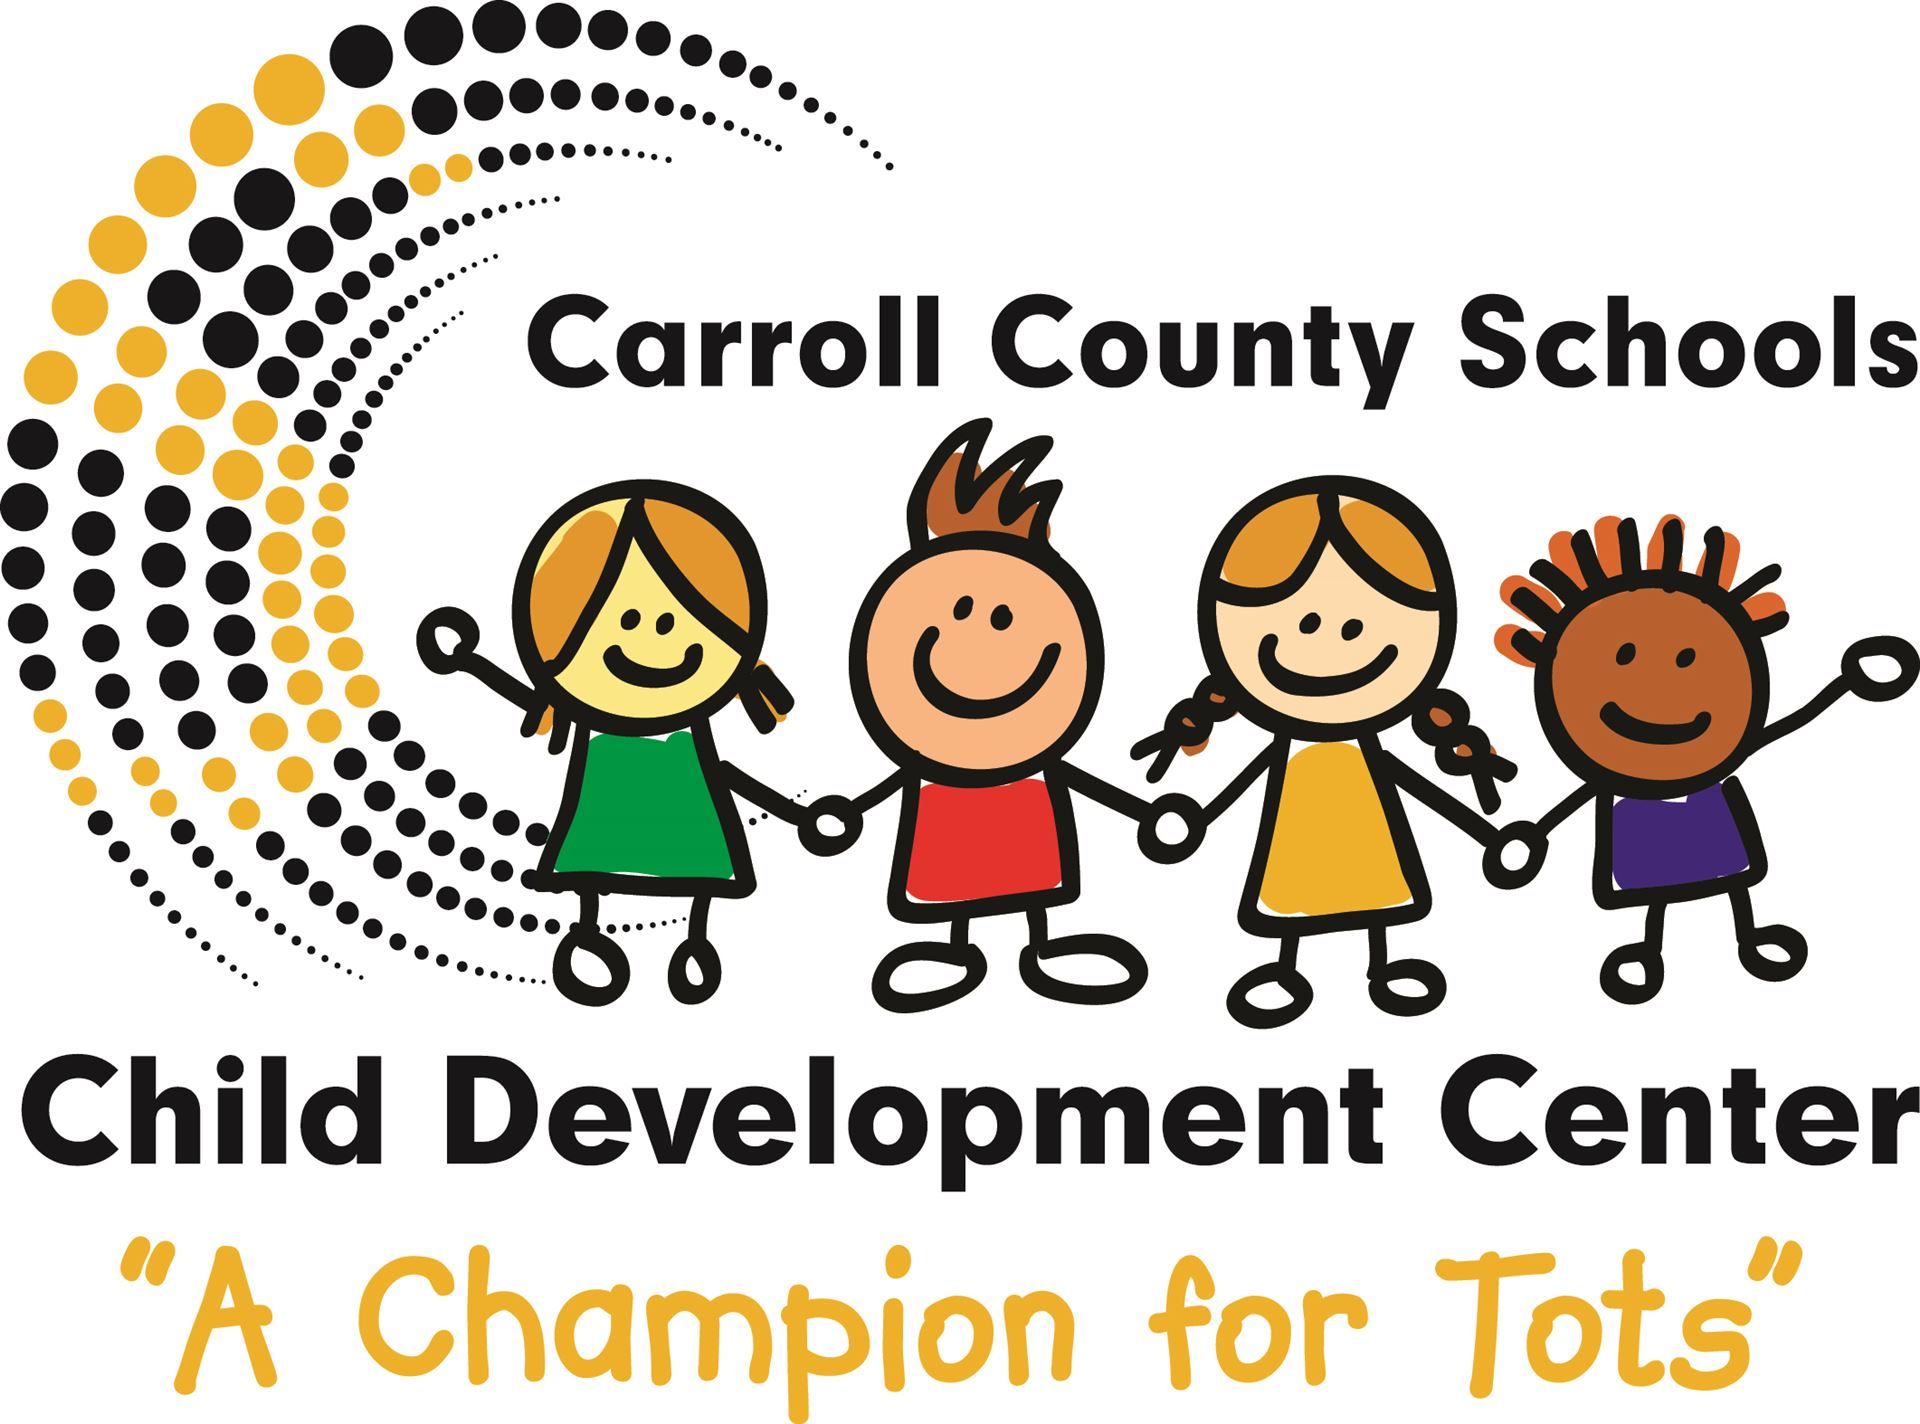 Carroll County Child Development Center